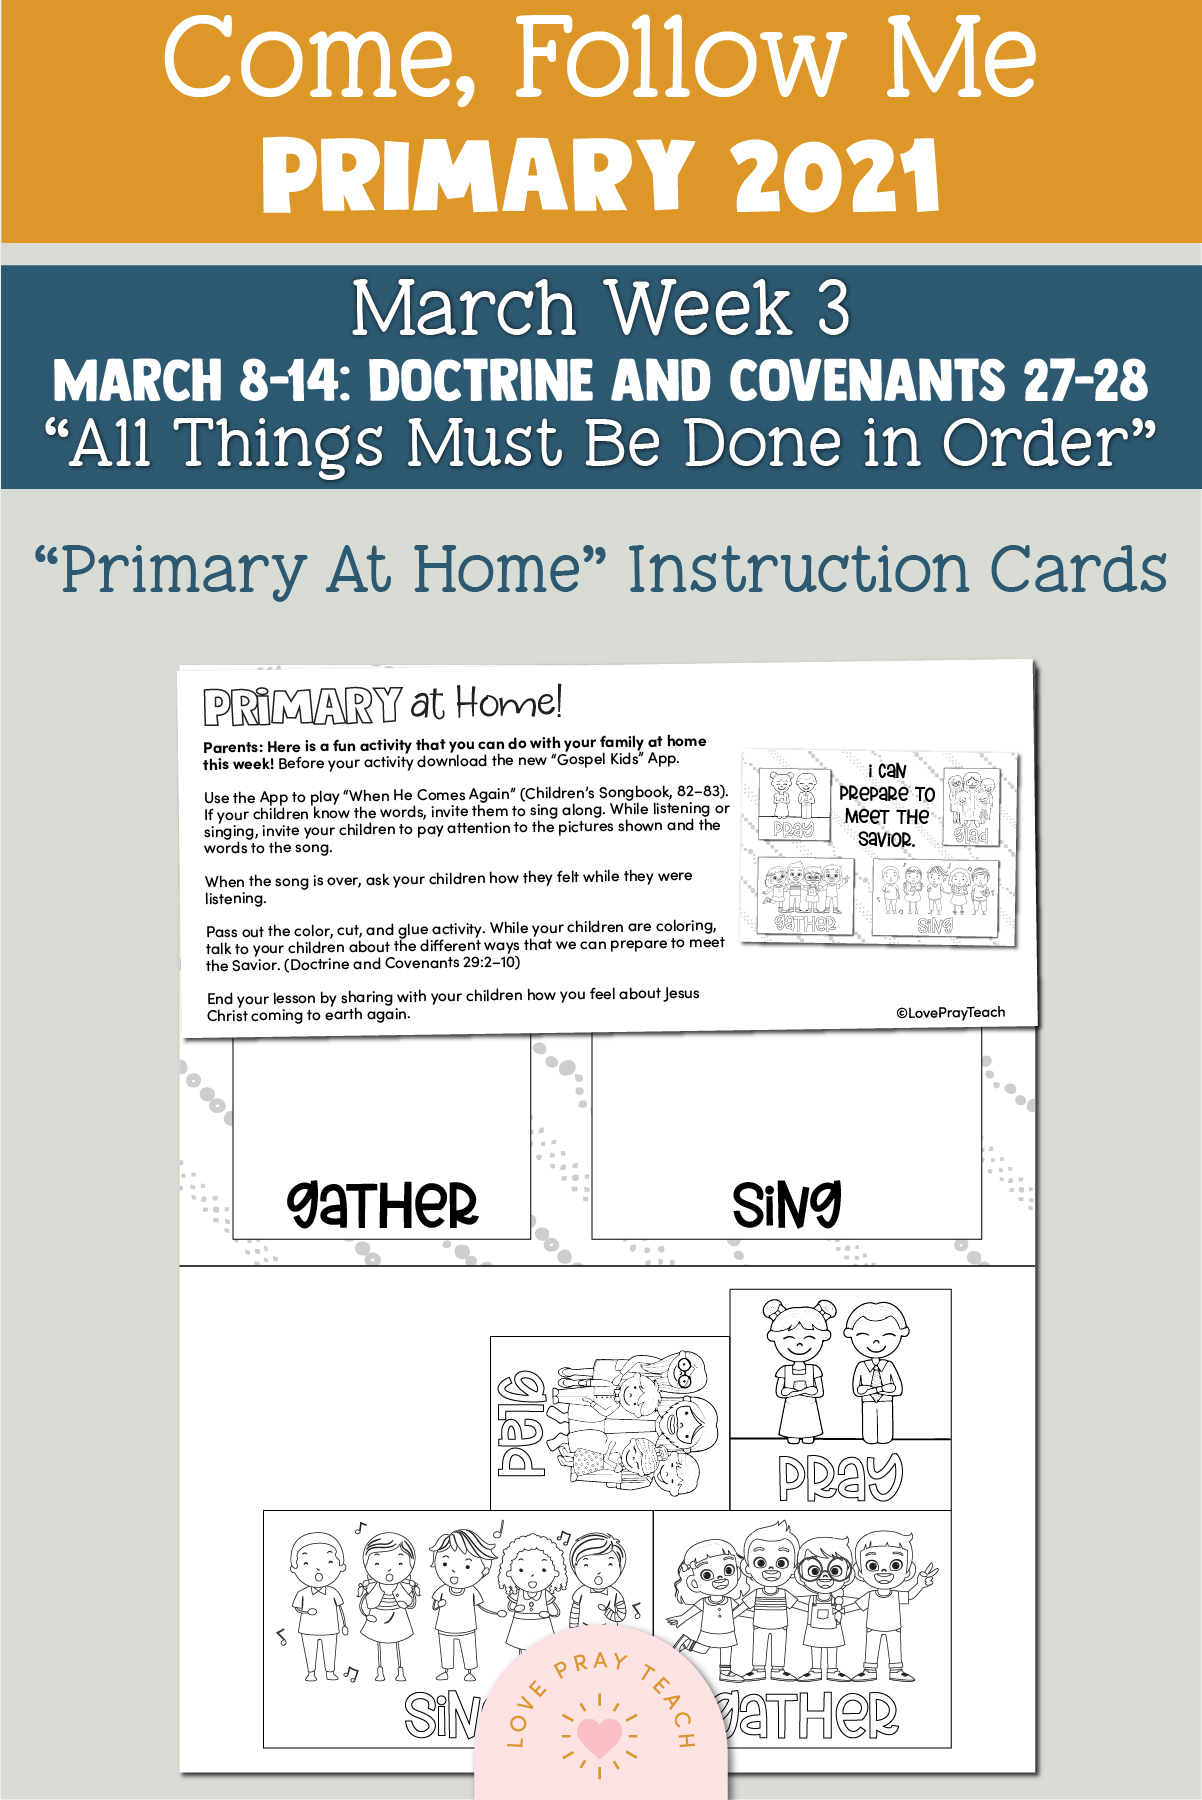 "Come, Follow Me for Primary 2021 March Week 4 Doctrine and Covenants 29 ""Jesus Christ Will Gather His People"" Printable Lesson Materials"